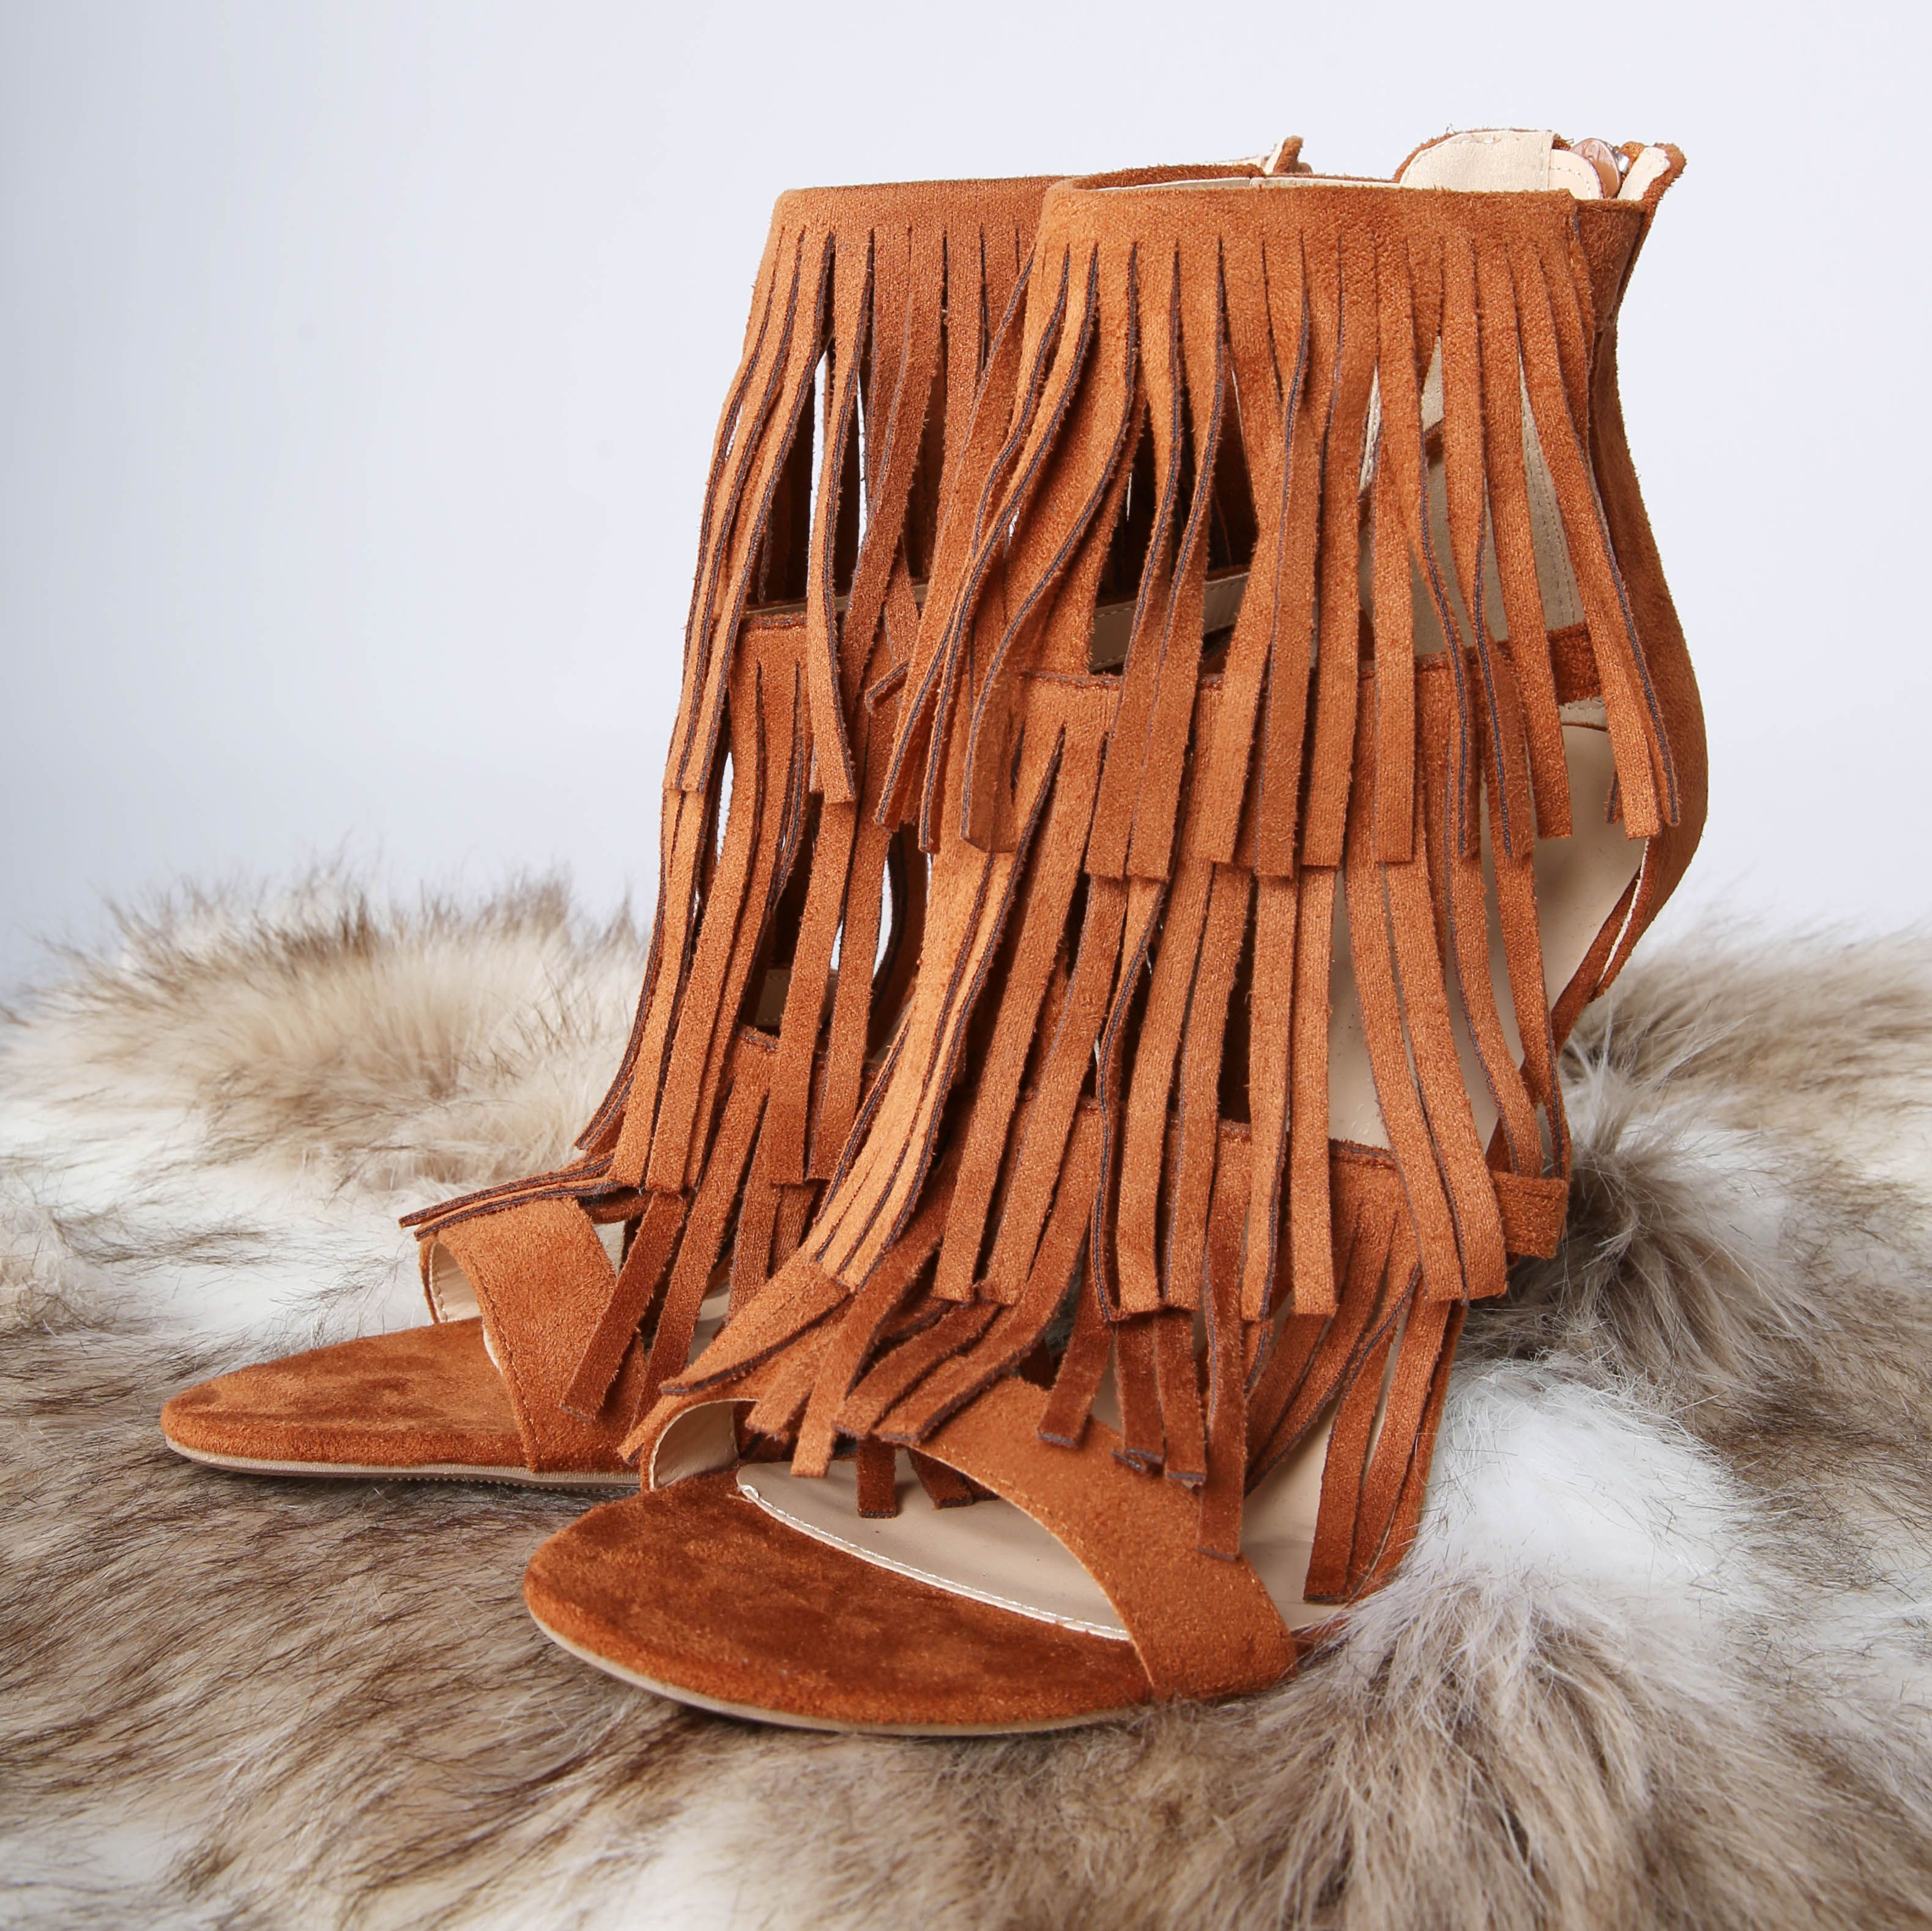 Fringe shoes are this season's hottest trend! #trendy